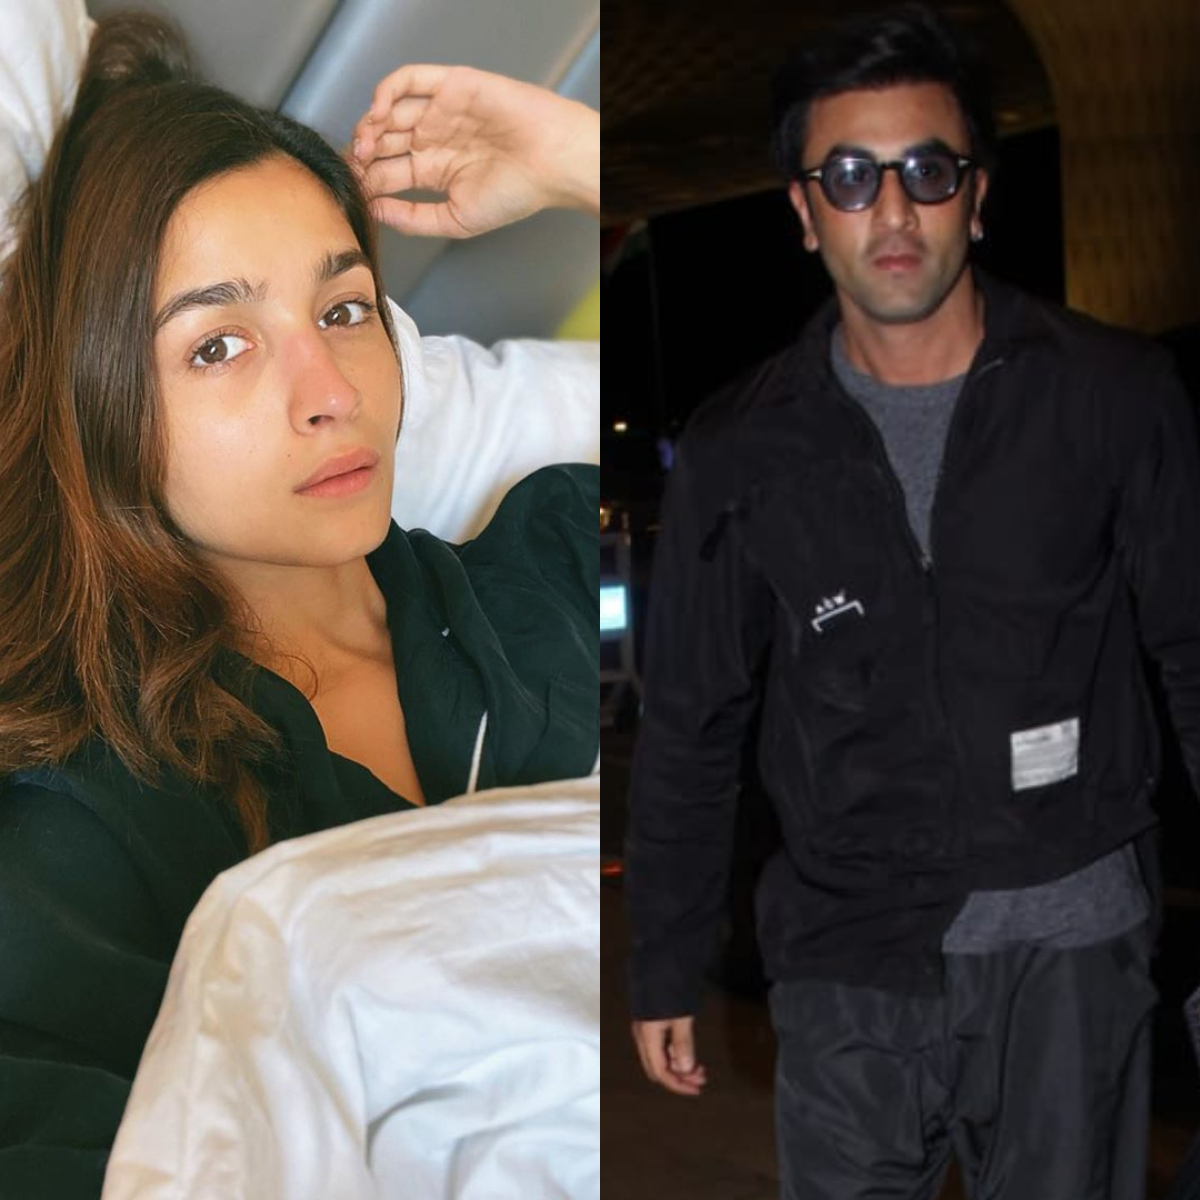 Alia Bhatt takes a breathtaking selfie in bed; Ranbir Kapoor celebrates a paparazzi's birthday at the airport